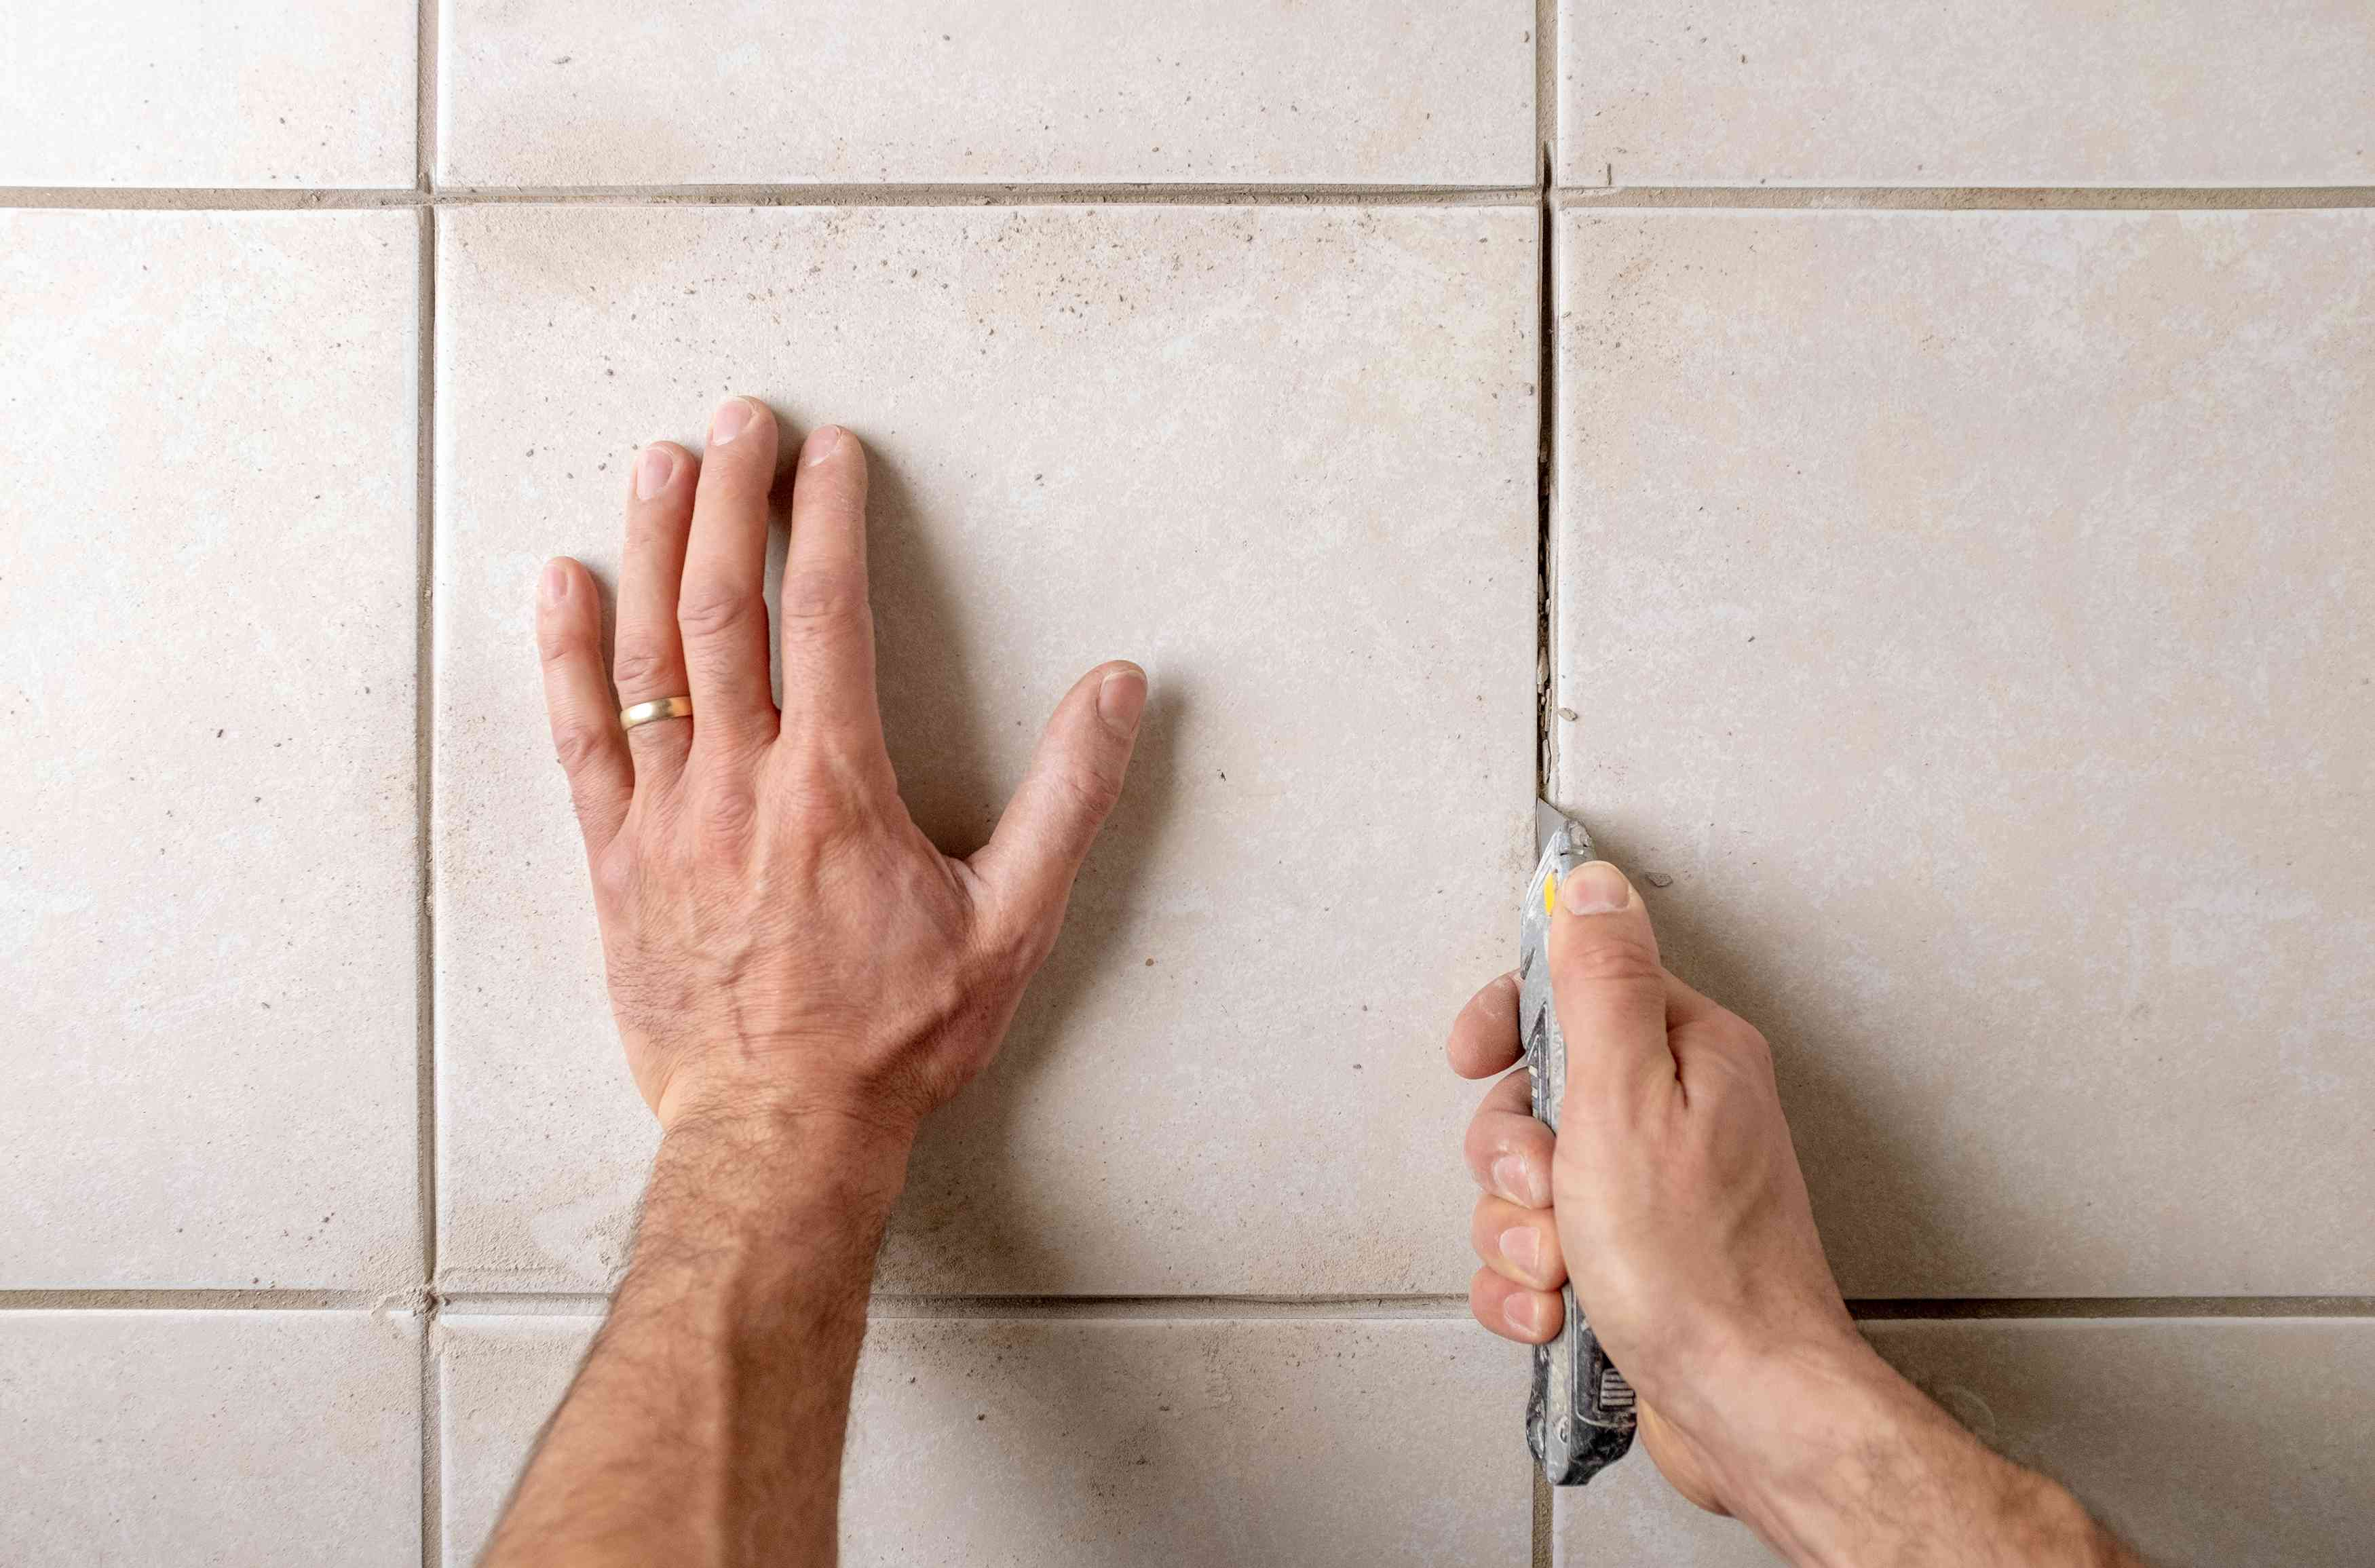 Use utility knife to remove remaining grout